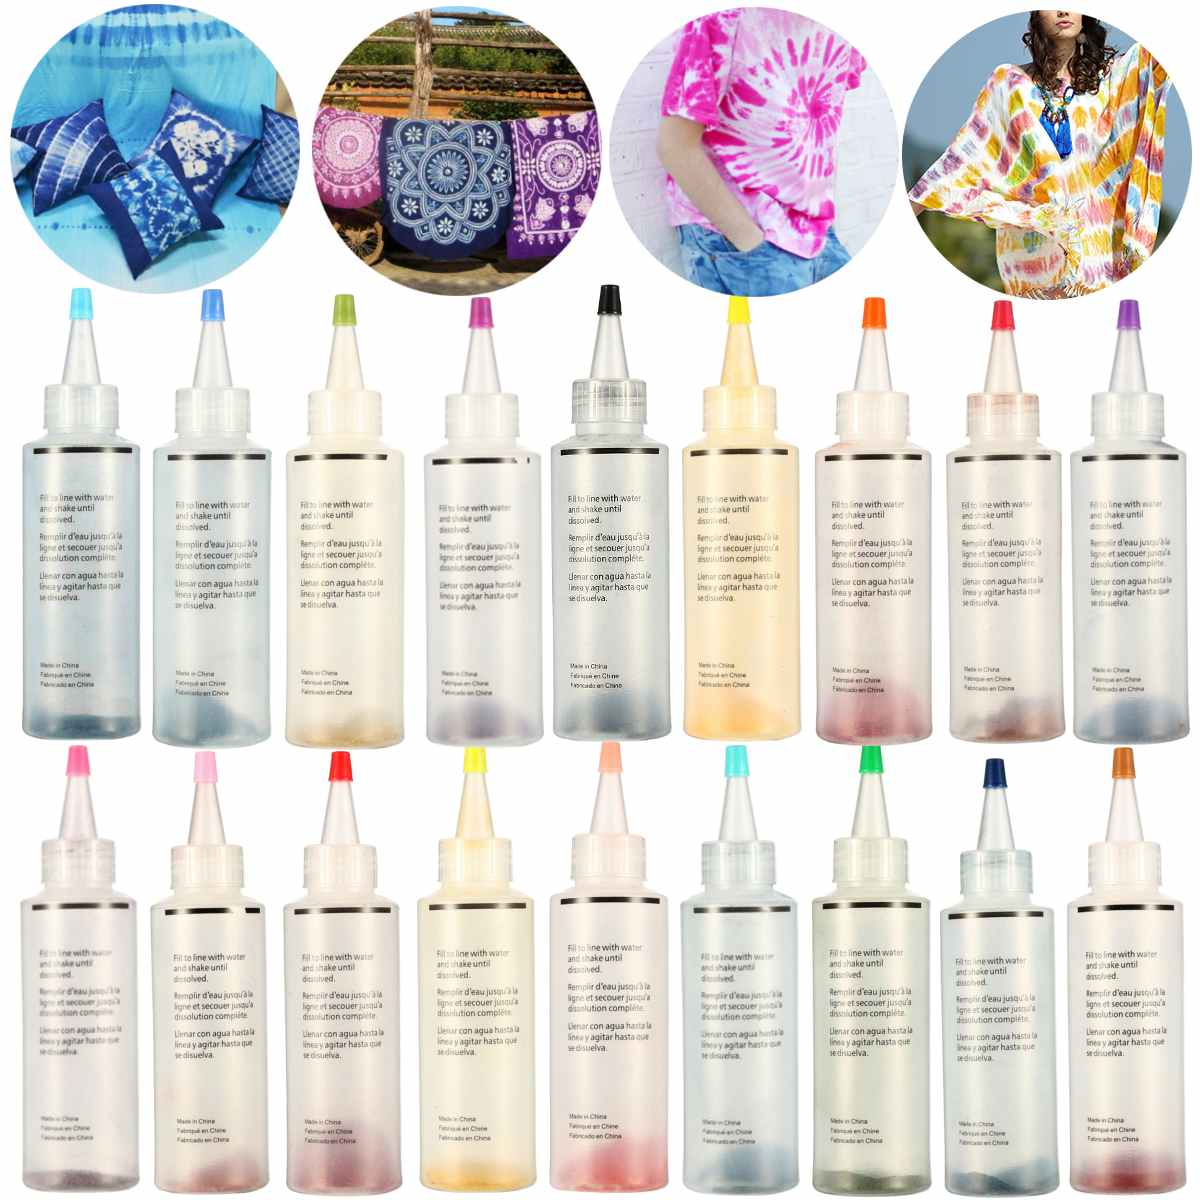 18Pcs/set DIY One Step Tie Dye Kit Activated Dye for Fabric Textile Permanent Paint Colors Clothing Painting DIY Craft Supply18Pcs/set DIY One Step Tie Dye Kit Activated Dye for Fabric Textile Permanent Paint Colors Clothing Painting DIY Craft Supply